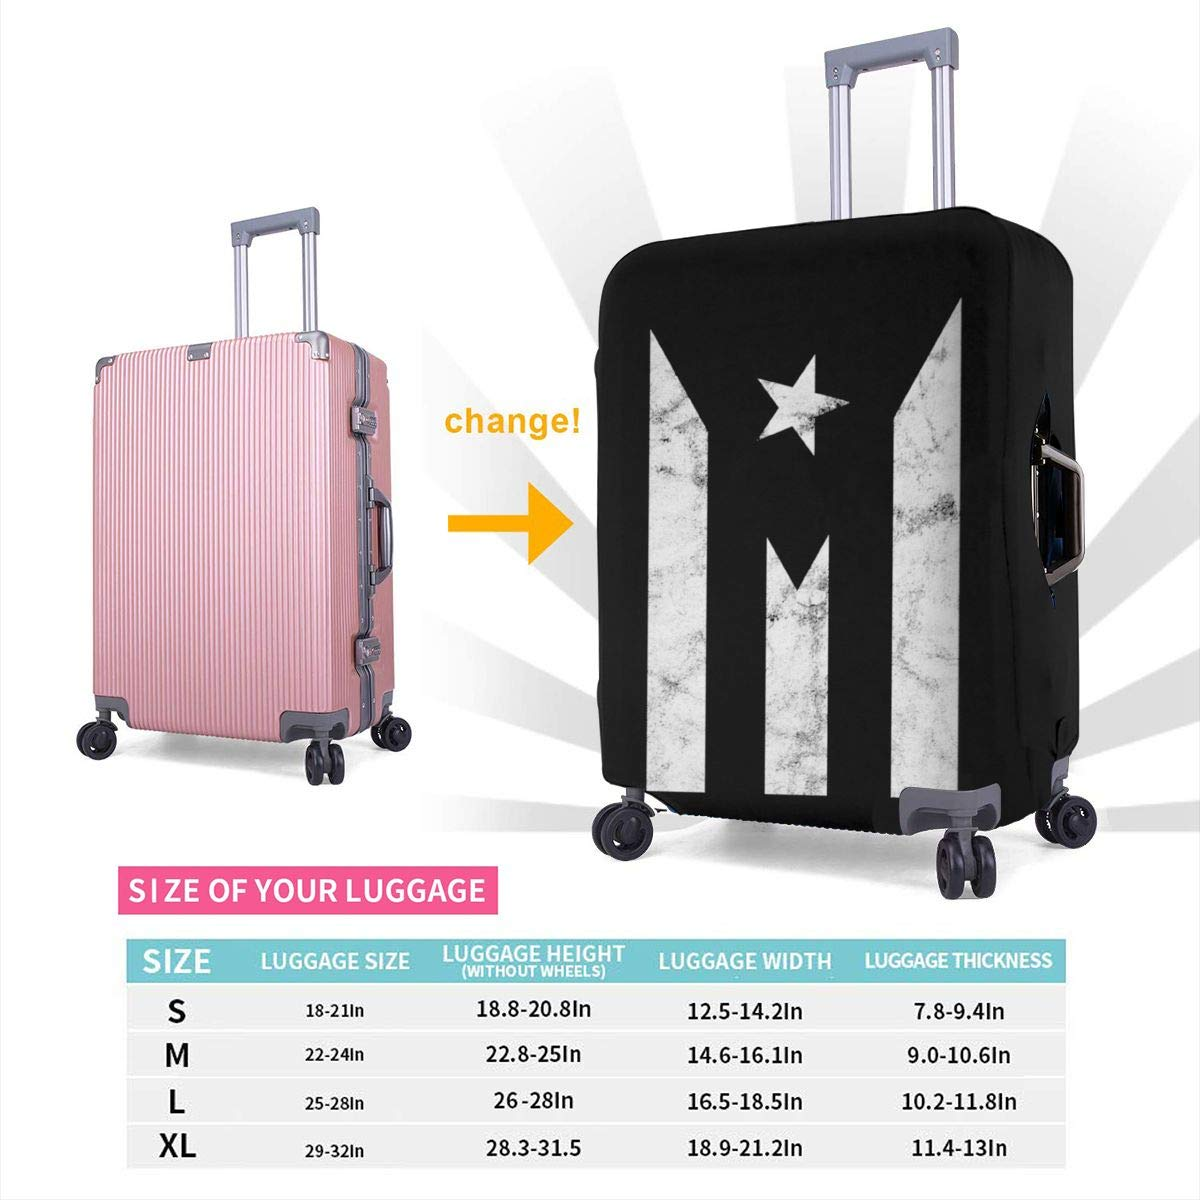 Puerto Rico Resiste Boricua Flag1 Elastic Travel Luggage Cover,Double Print Fashion Washable Suitcase Protector Cover Fits 18-32inch Luggage